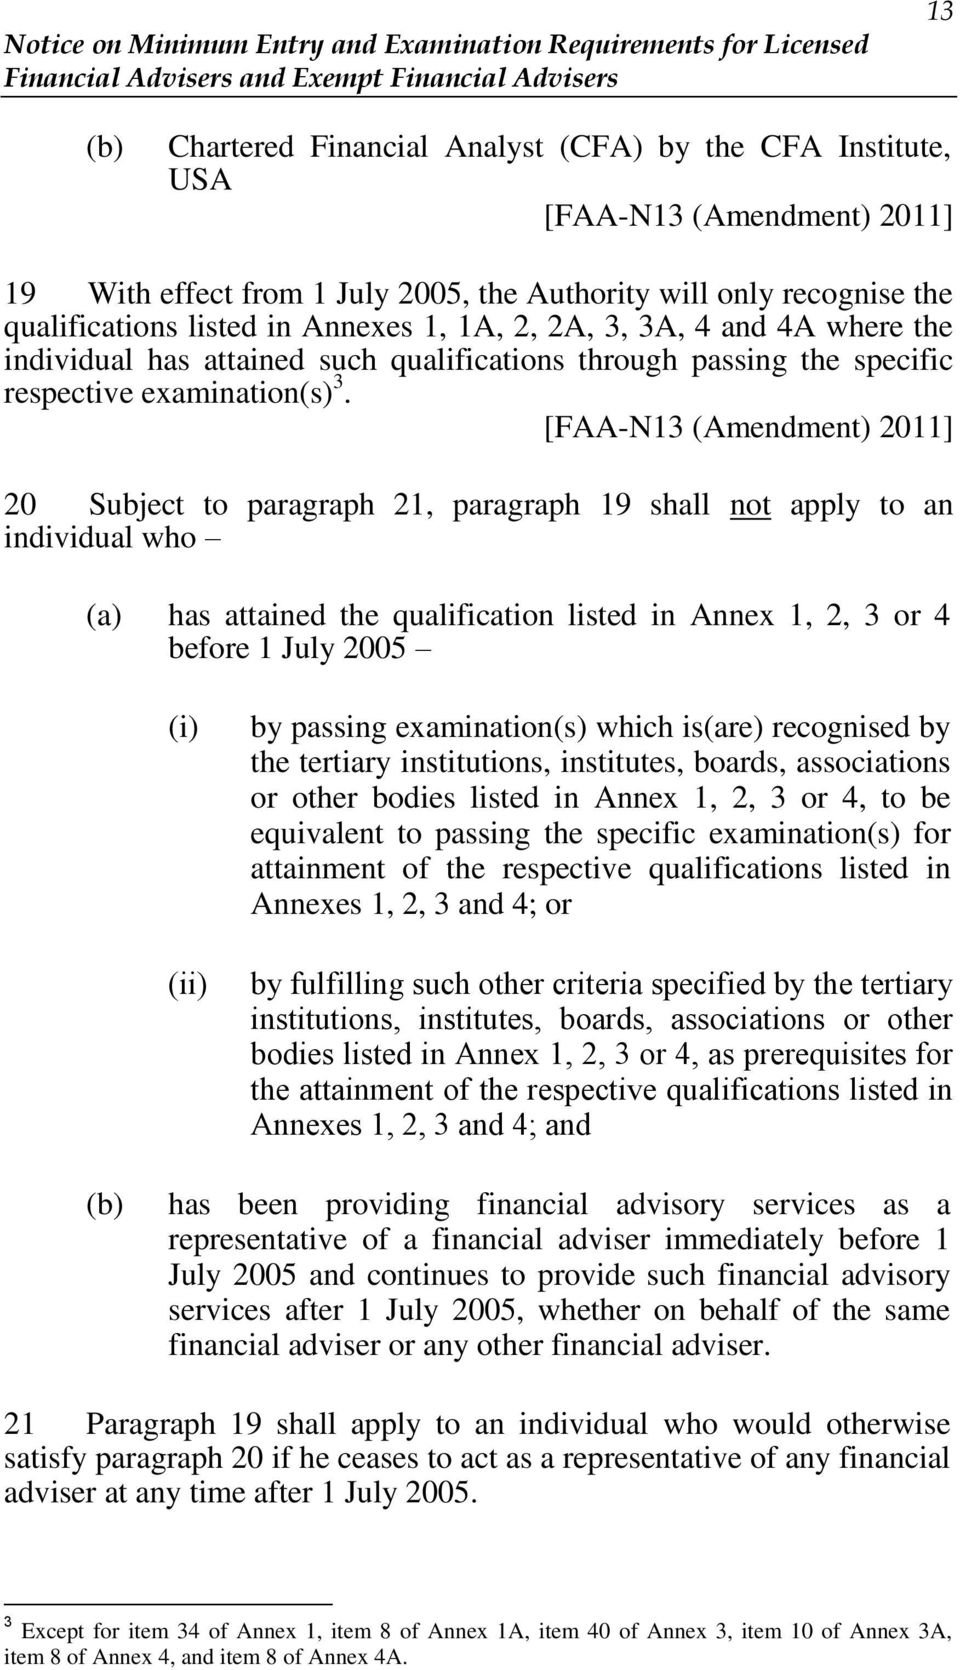 20 Subject to paragraph 21, paragraph 19 shall not apply to an individual who (a) has attained the qualification listed in Annex 1, 2, 3 or 4 before 1 July 2005 (i) (ii) by passing examination(s)